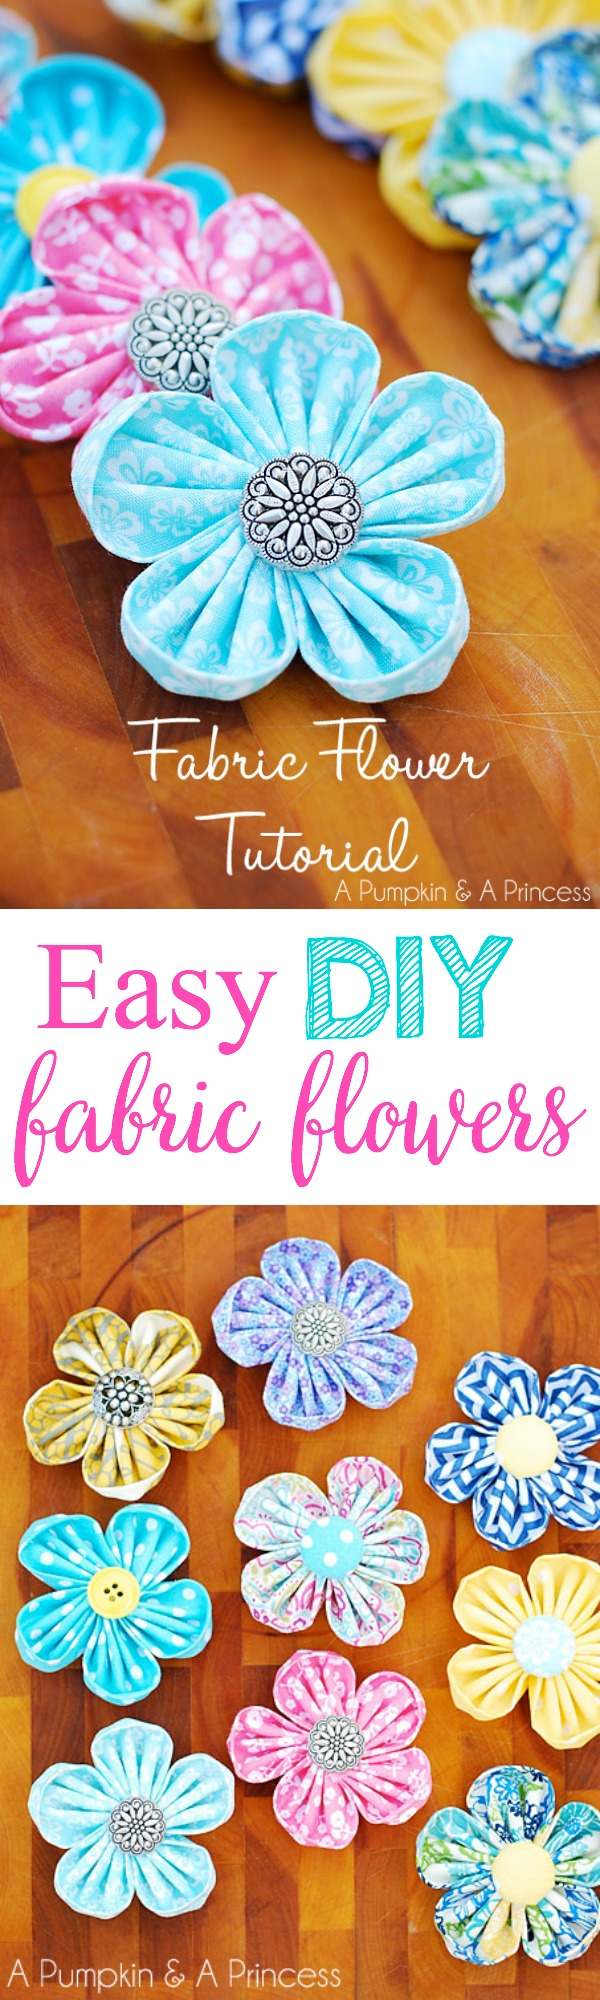 How to make fabric flowers with a flower maker tool